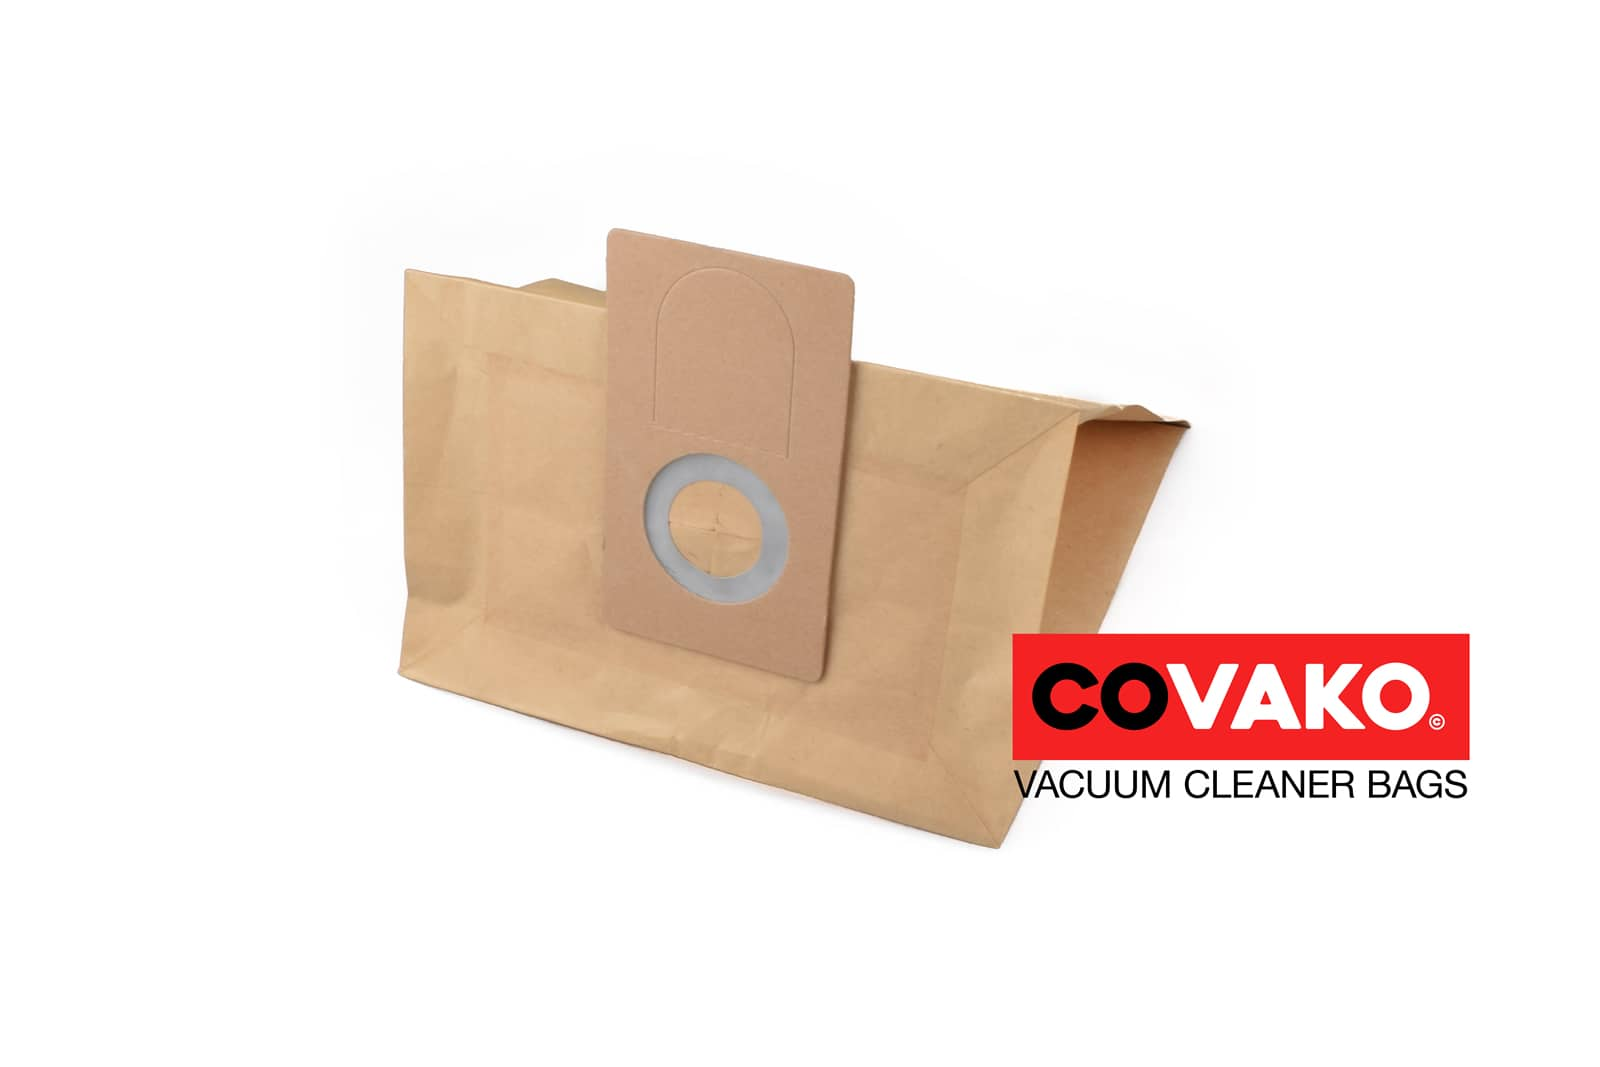 Clean a la Card Major / Paper - Clean a la Card vacuum cleaner bags